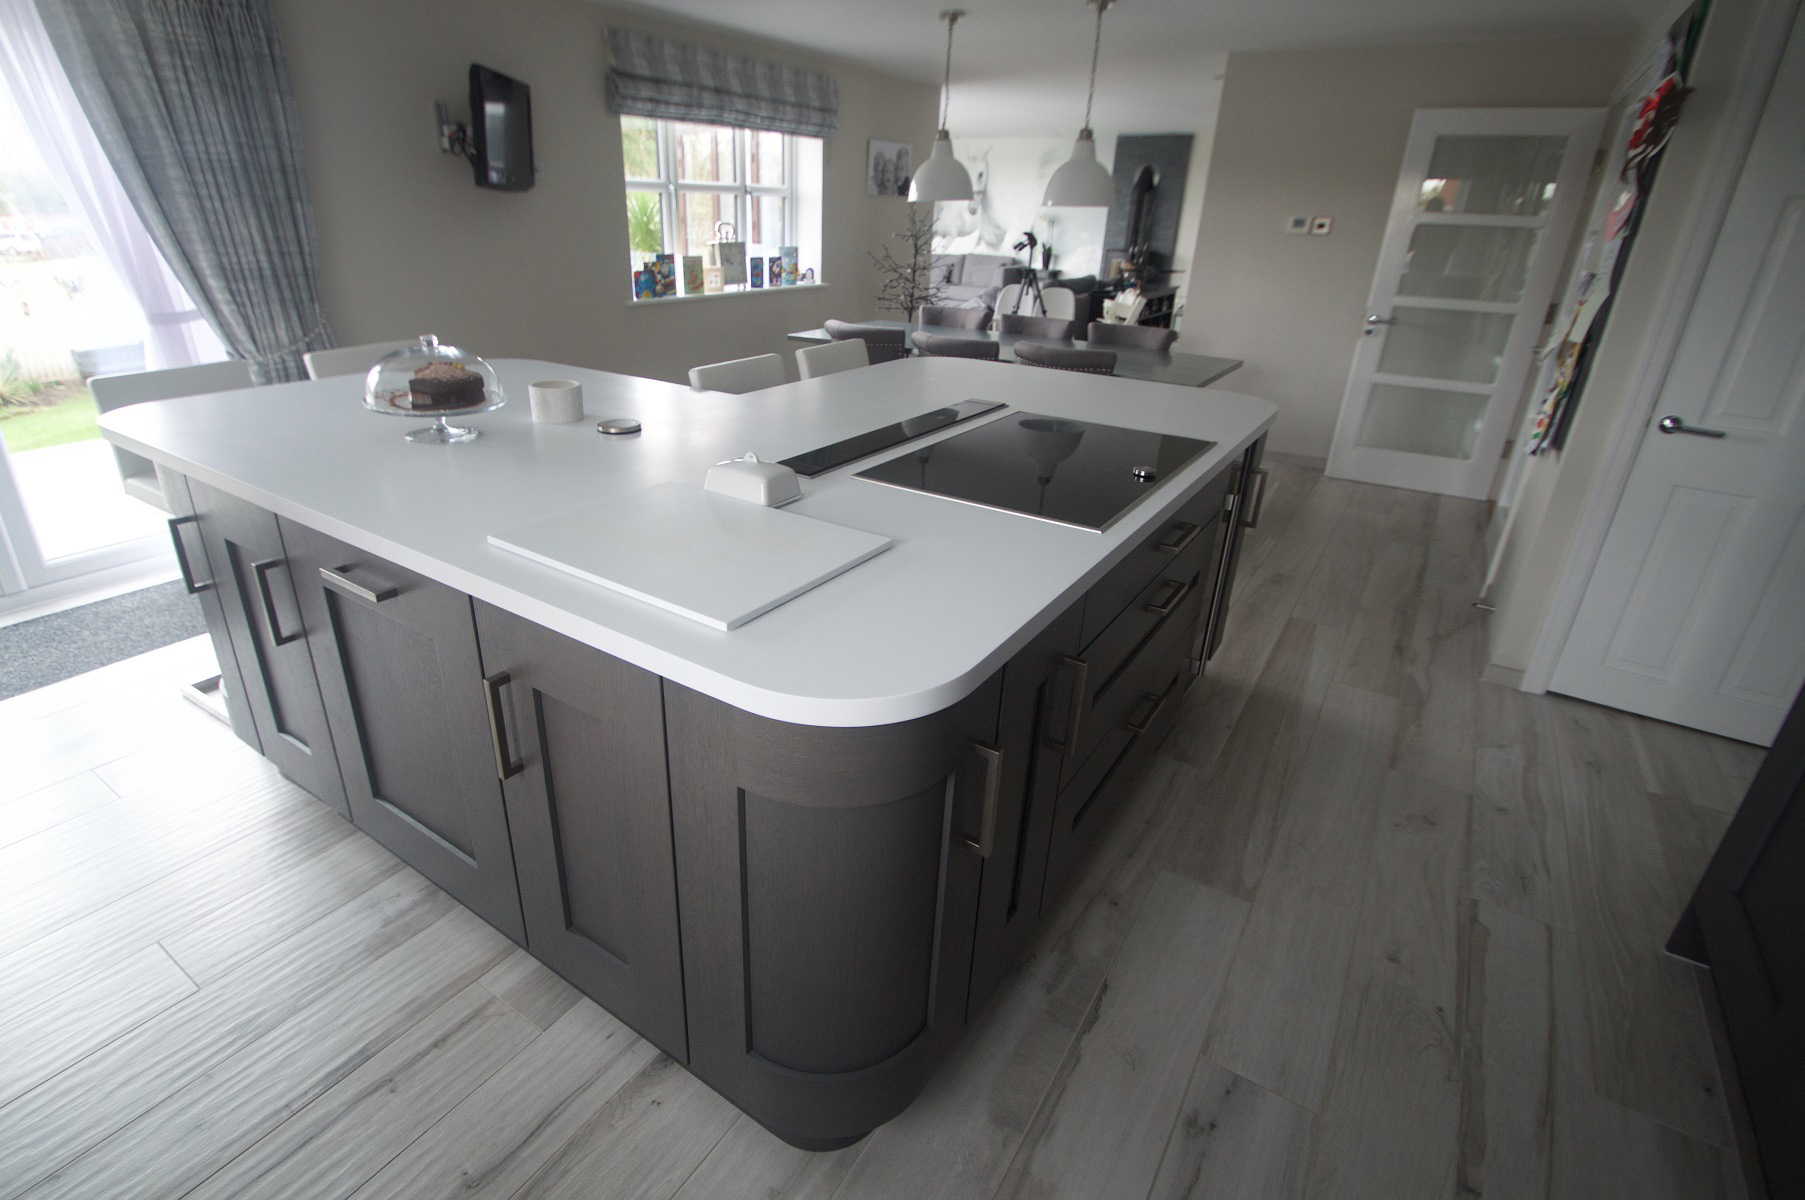 Clonmel Anthracite Kitchen Island Featuring Curved Doors, Project by Elite Kitchens of Manchester